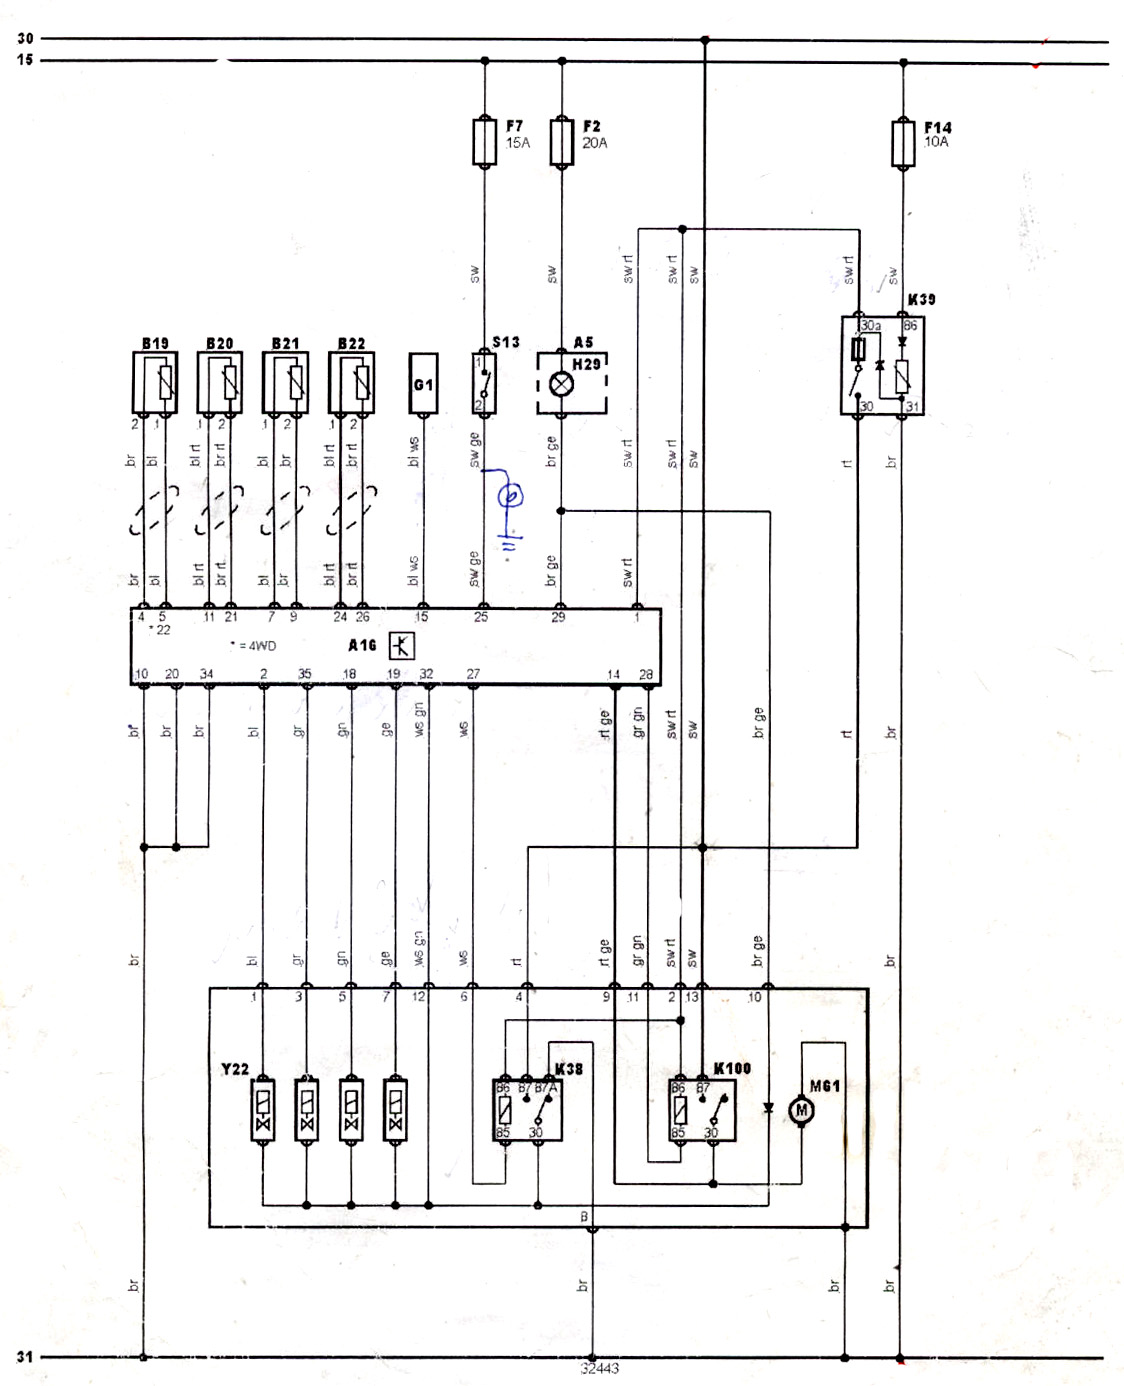 Locate the wiring diagram for your demonstrator vehicle. Find the ABS wheel  speed sensor pin out connections to the ECU on the wiring diagram and the  ...